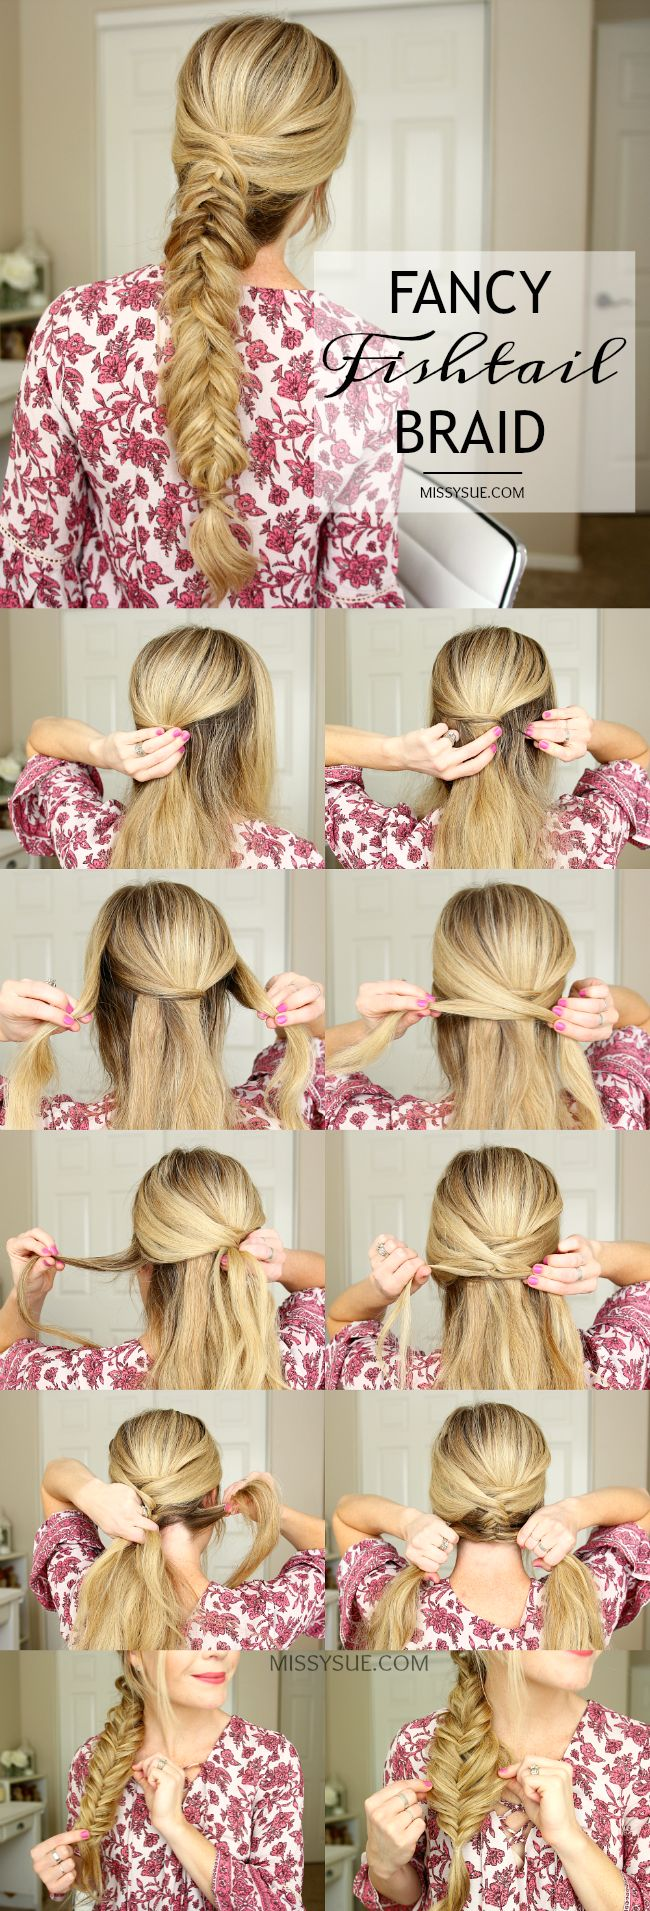 fancy-fishtail-braid-hair-tutorial